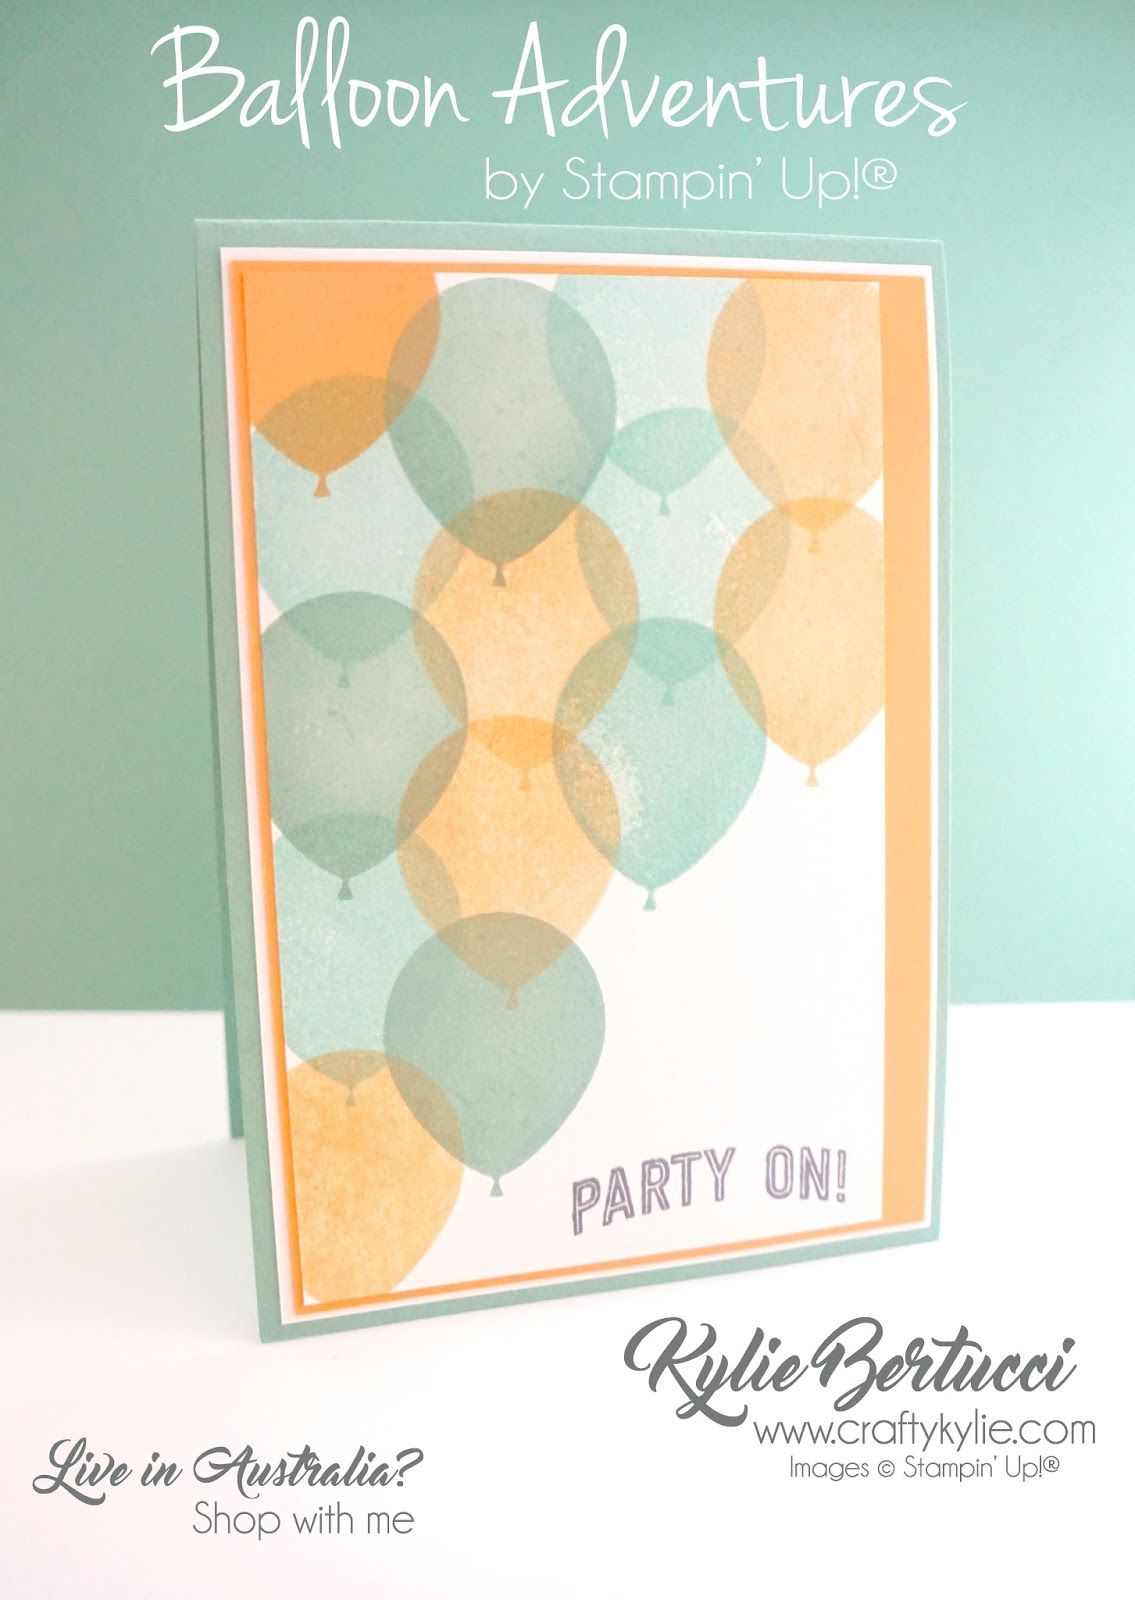 New Video Facebook Live Chat Balloon Adventures Card Ideas